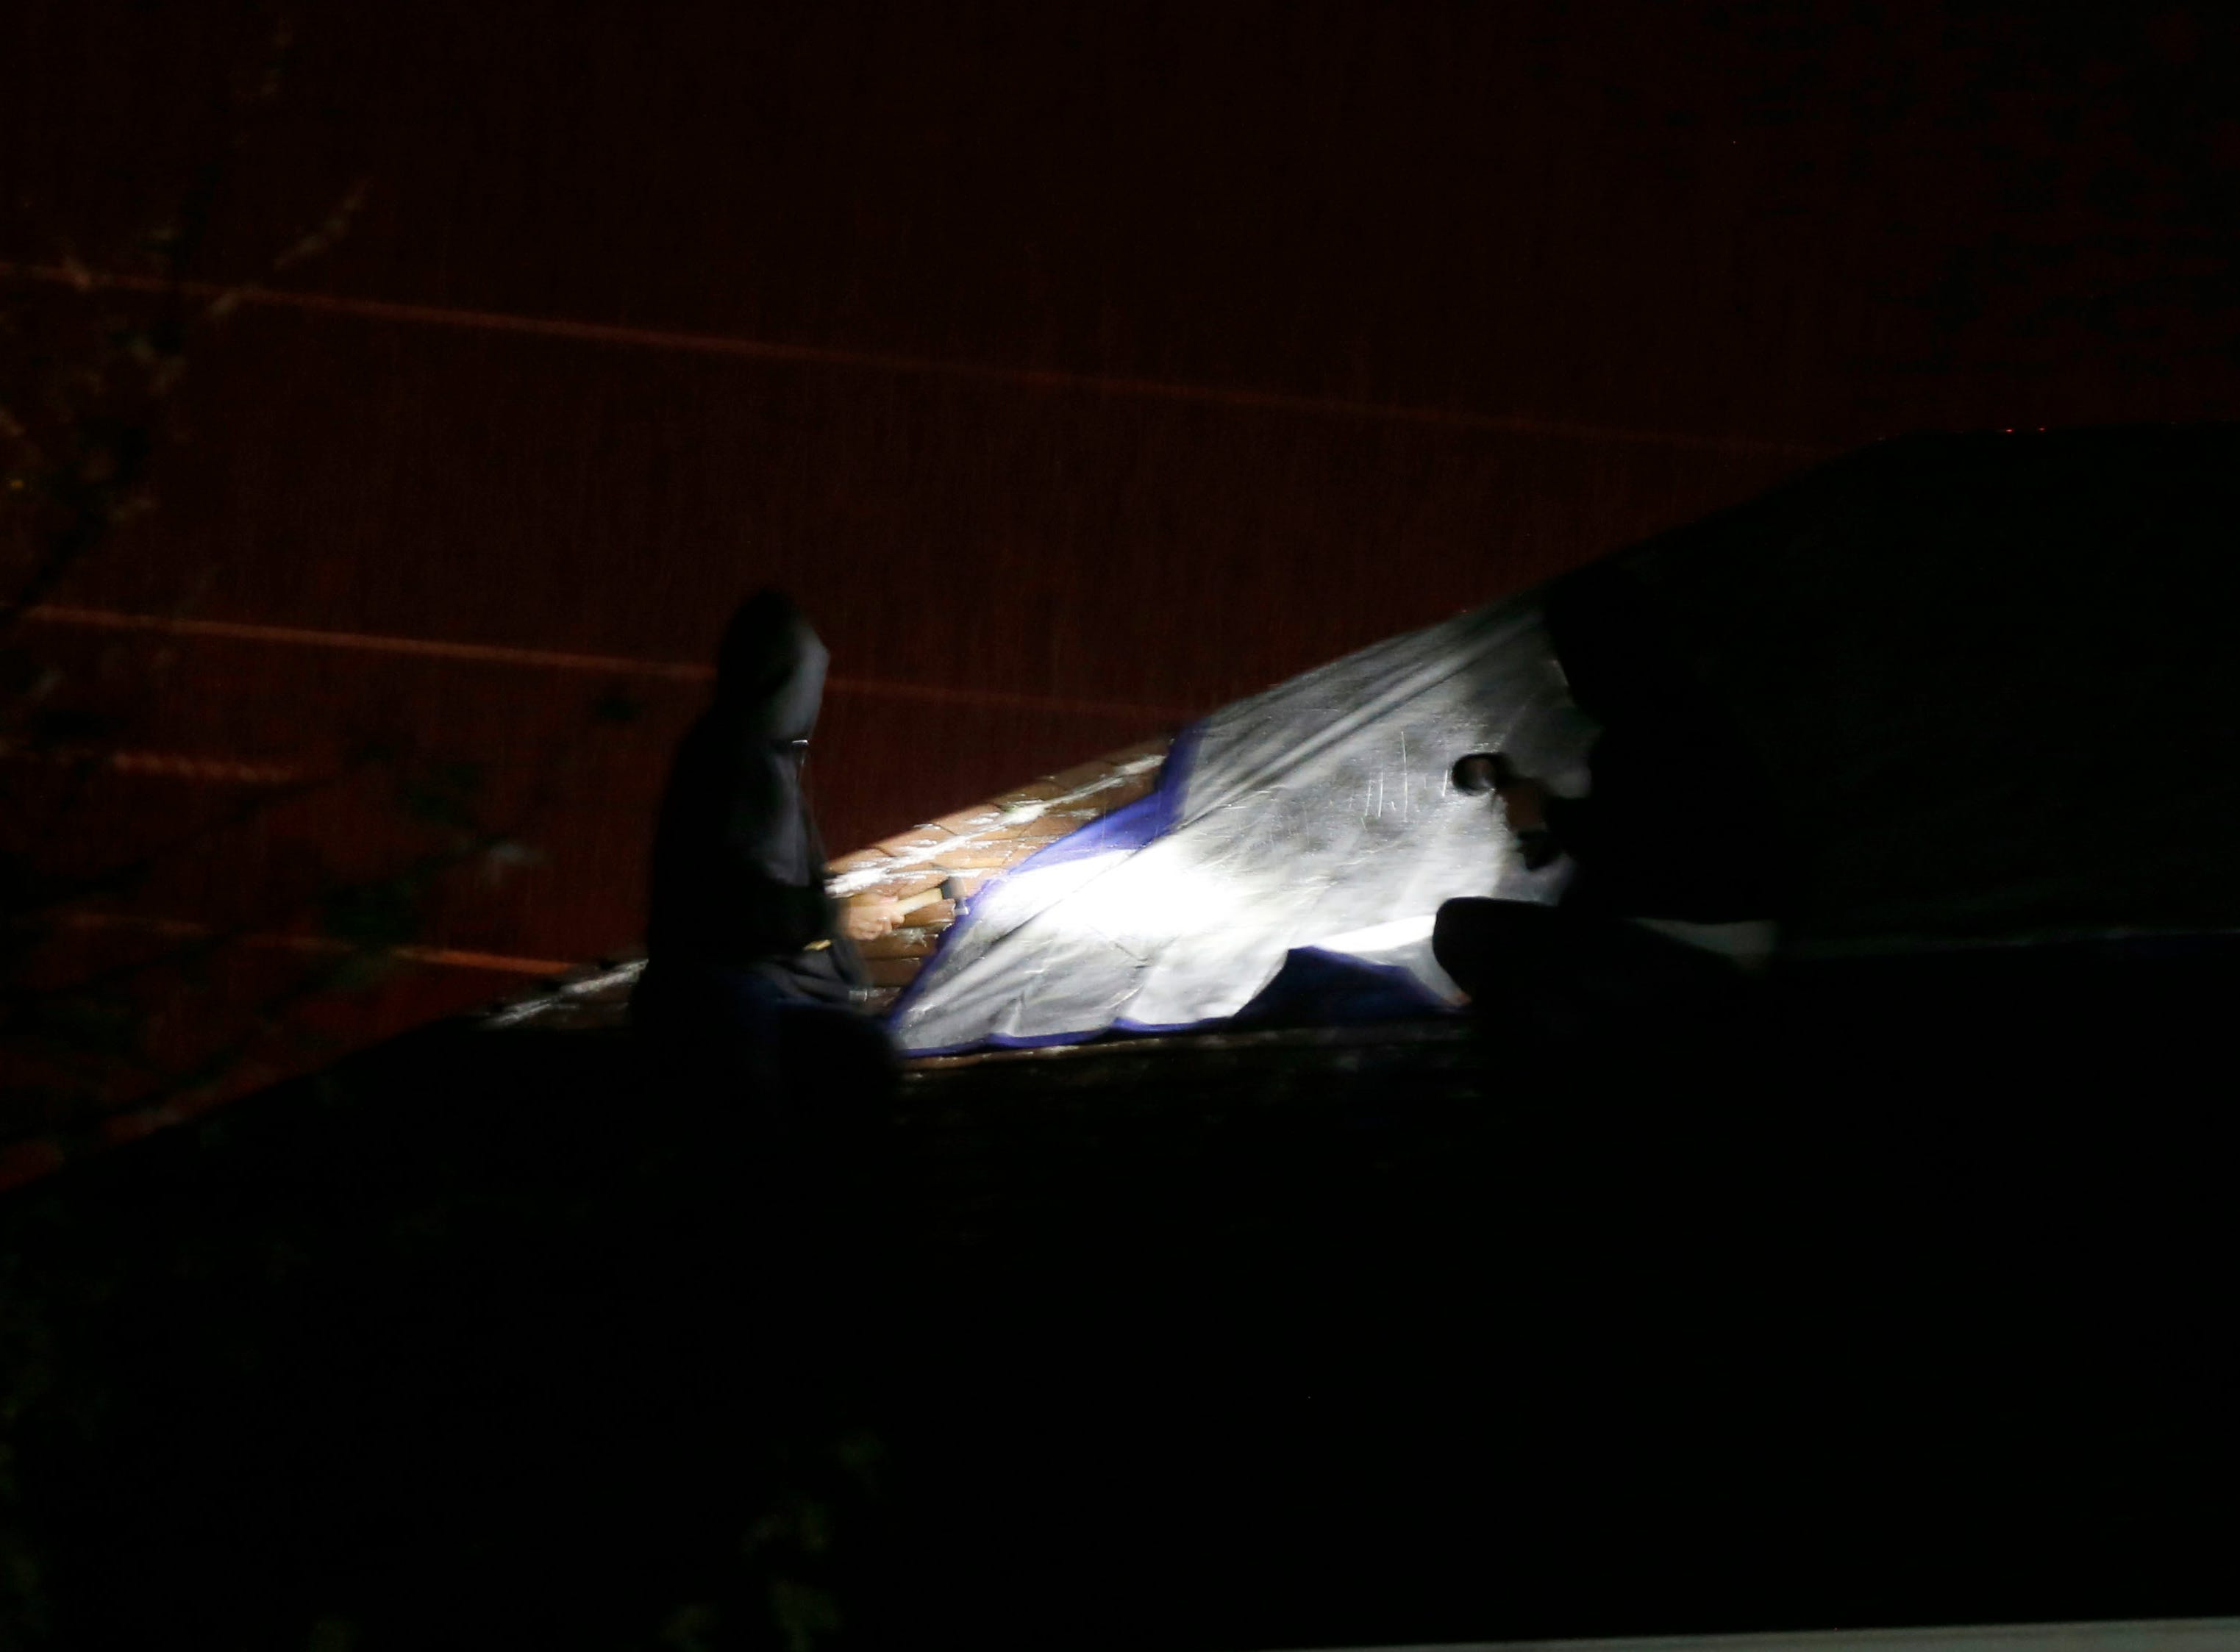 Residents work to put a tarp on his roof after what is believed to be a tornado damaged several houses in the Waterford neighborhood in Ozark on Tuesday, April 30, 2019.